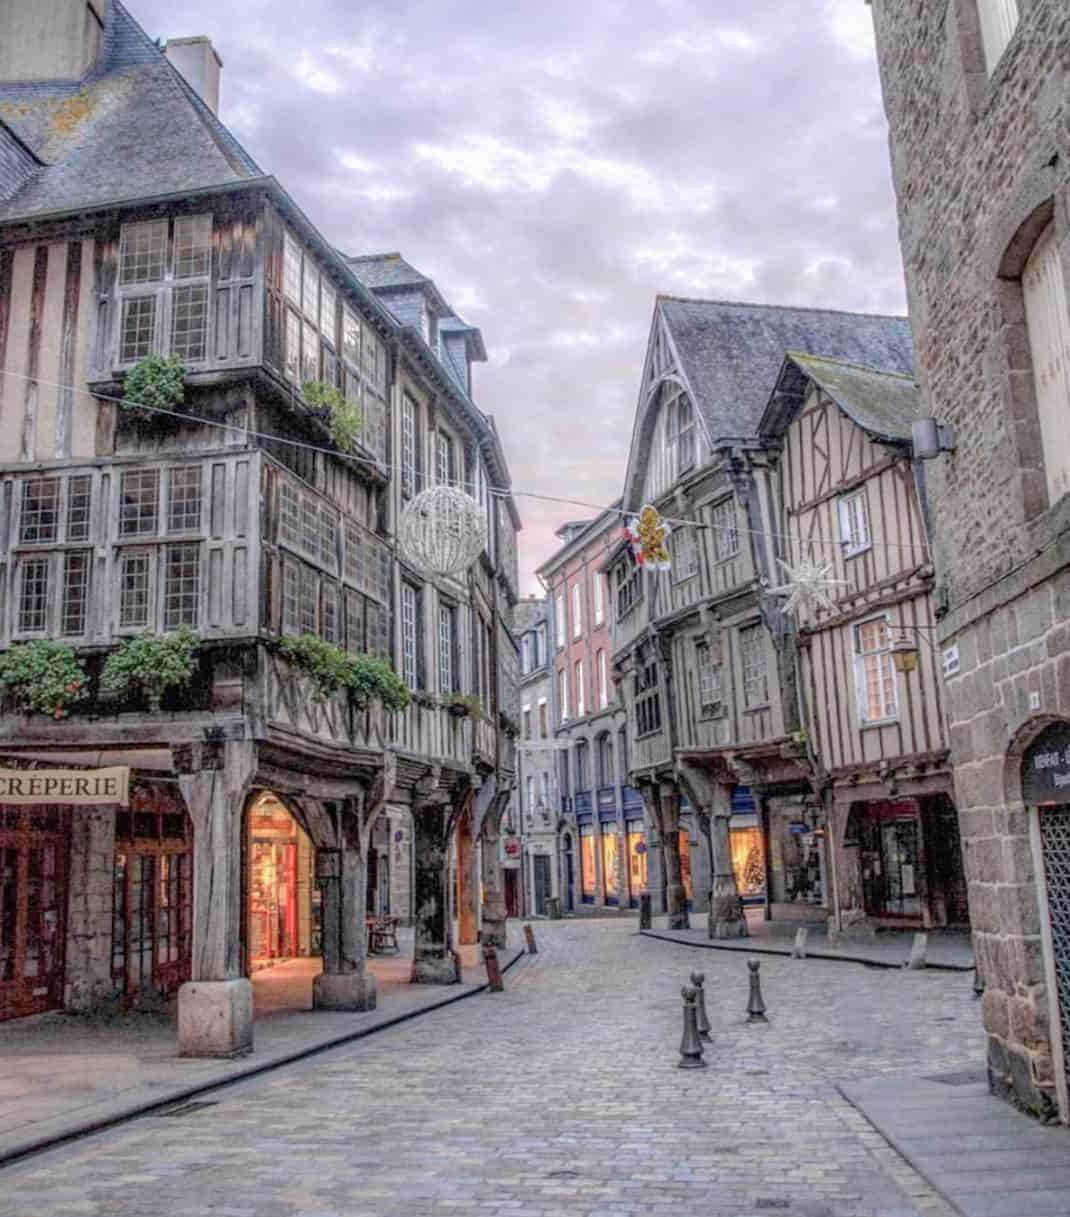 2 Days In Brittany - Dinan Twilight